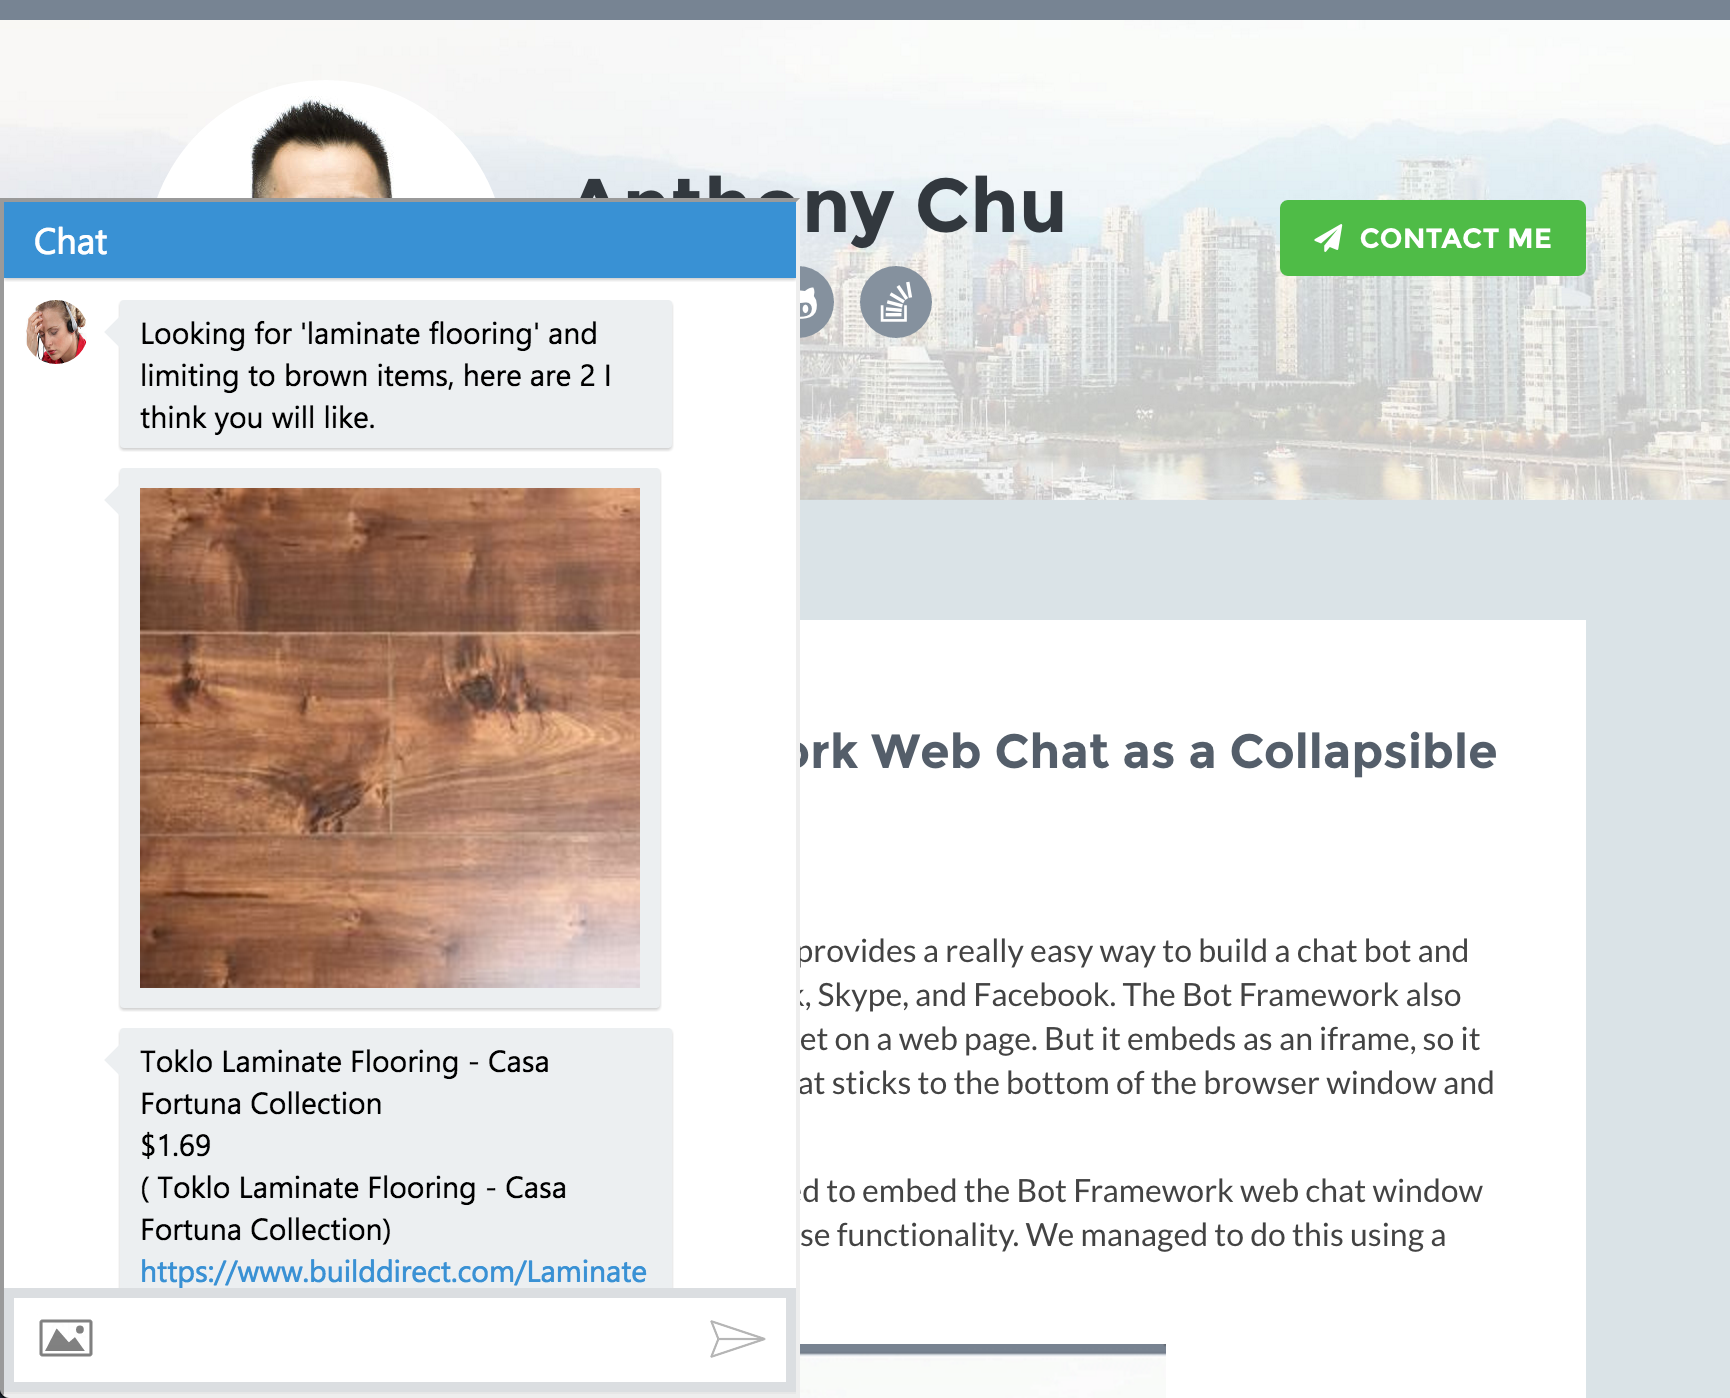 Embed the Bot Framework Web Chat as a Collapsible Window